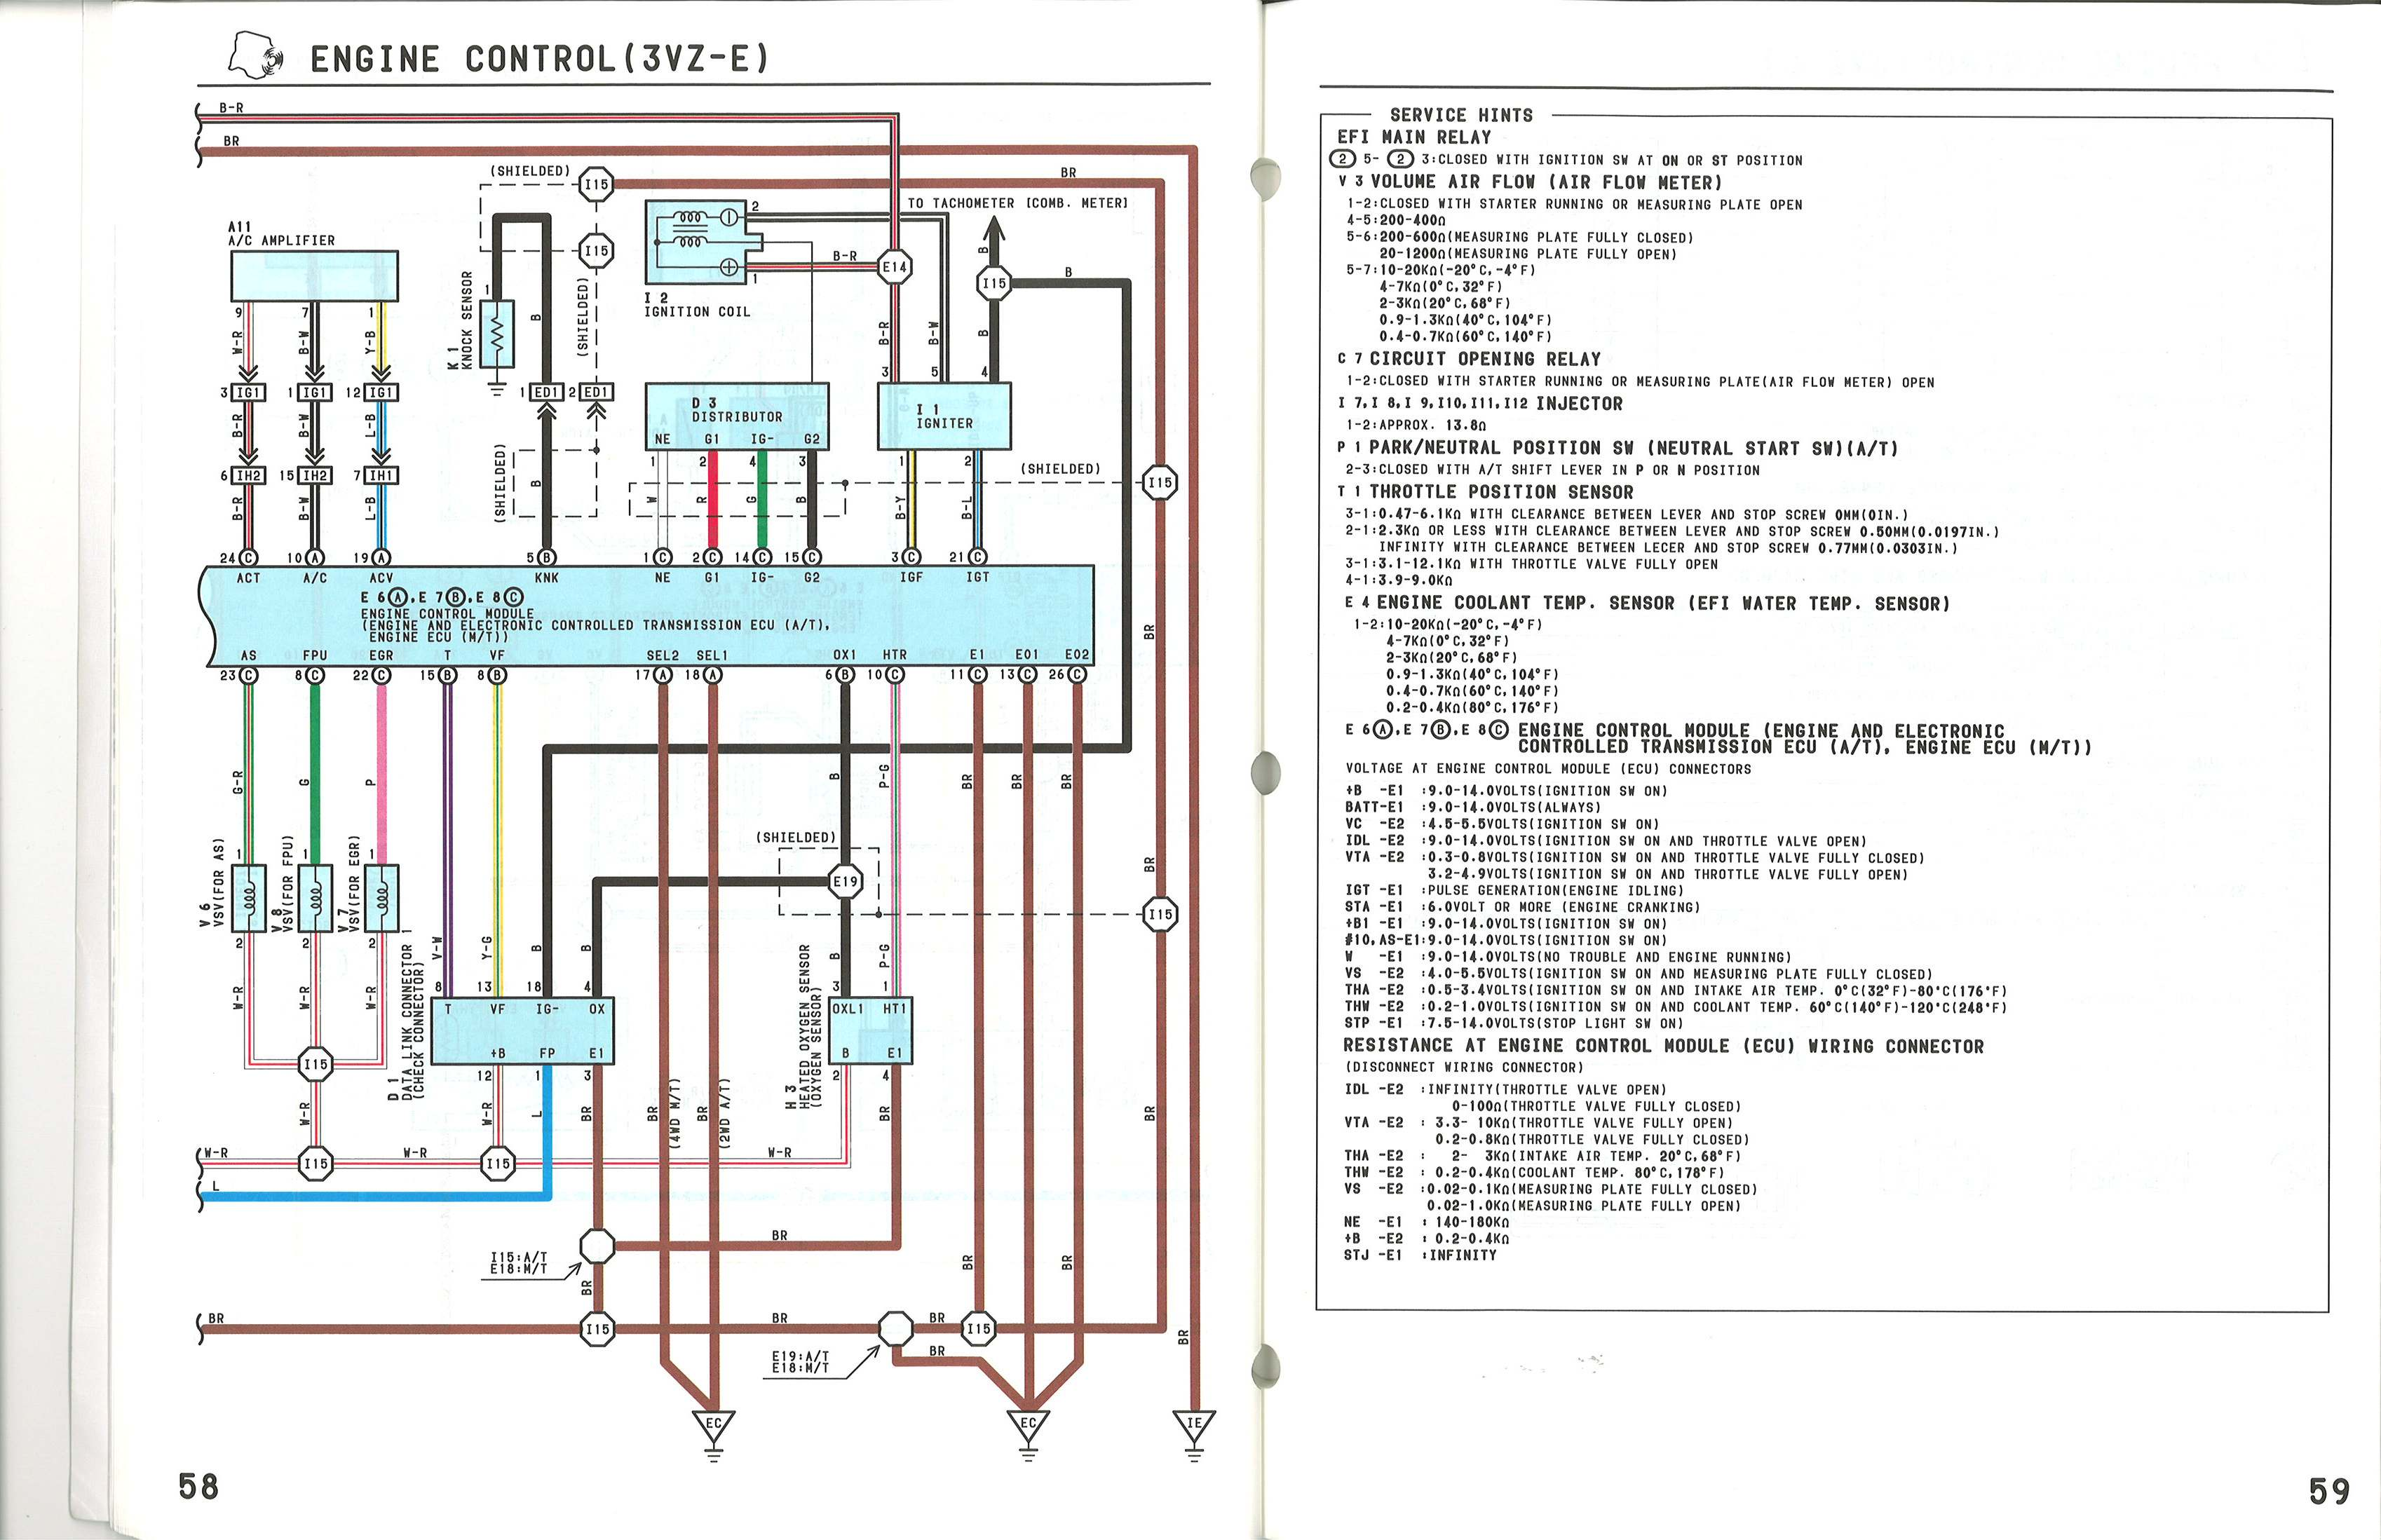 1991 Jeep Cherokee Engine Diagram | Wiring Library